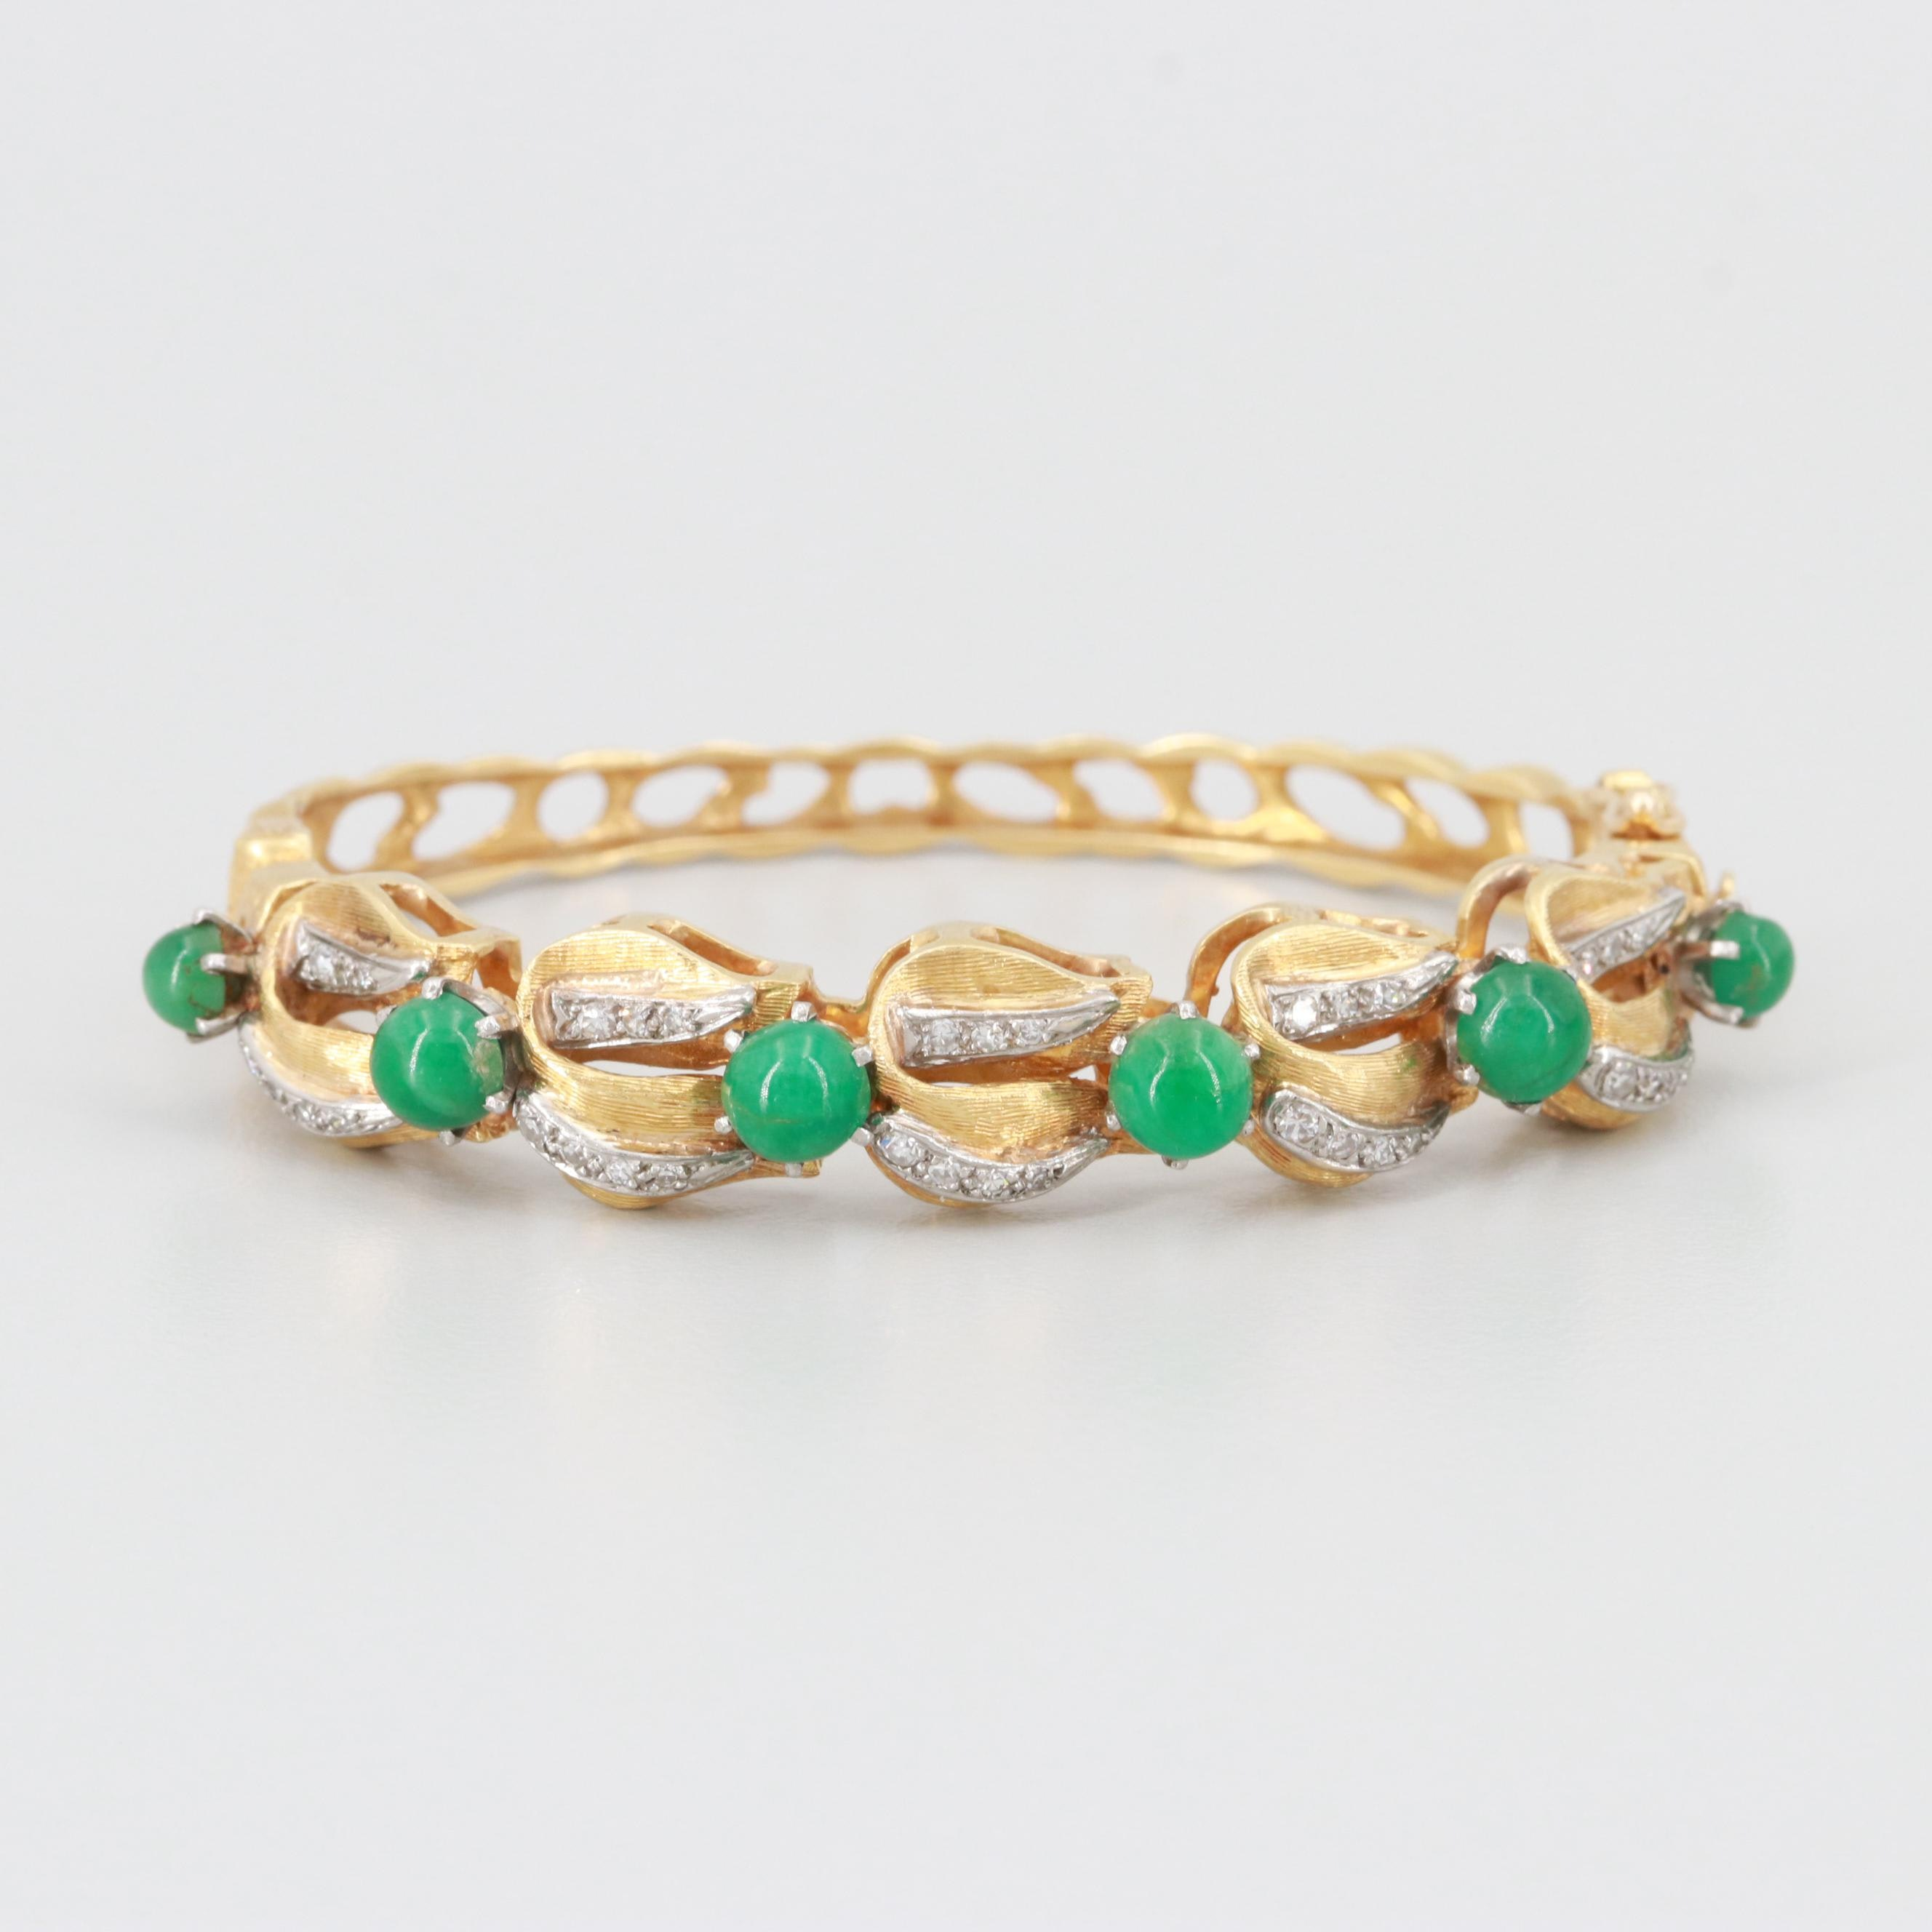 Van Gogh 18K Yellow Gold Emerald and Diamond Bangle Bracelet with Brushed Finish